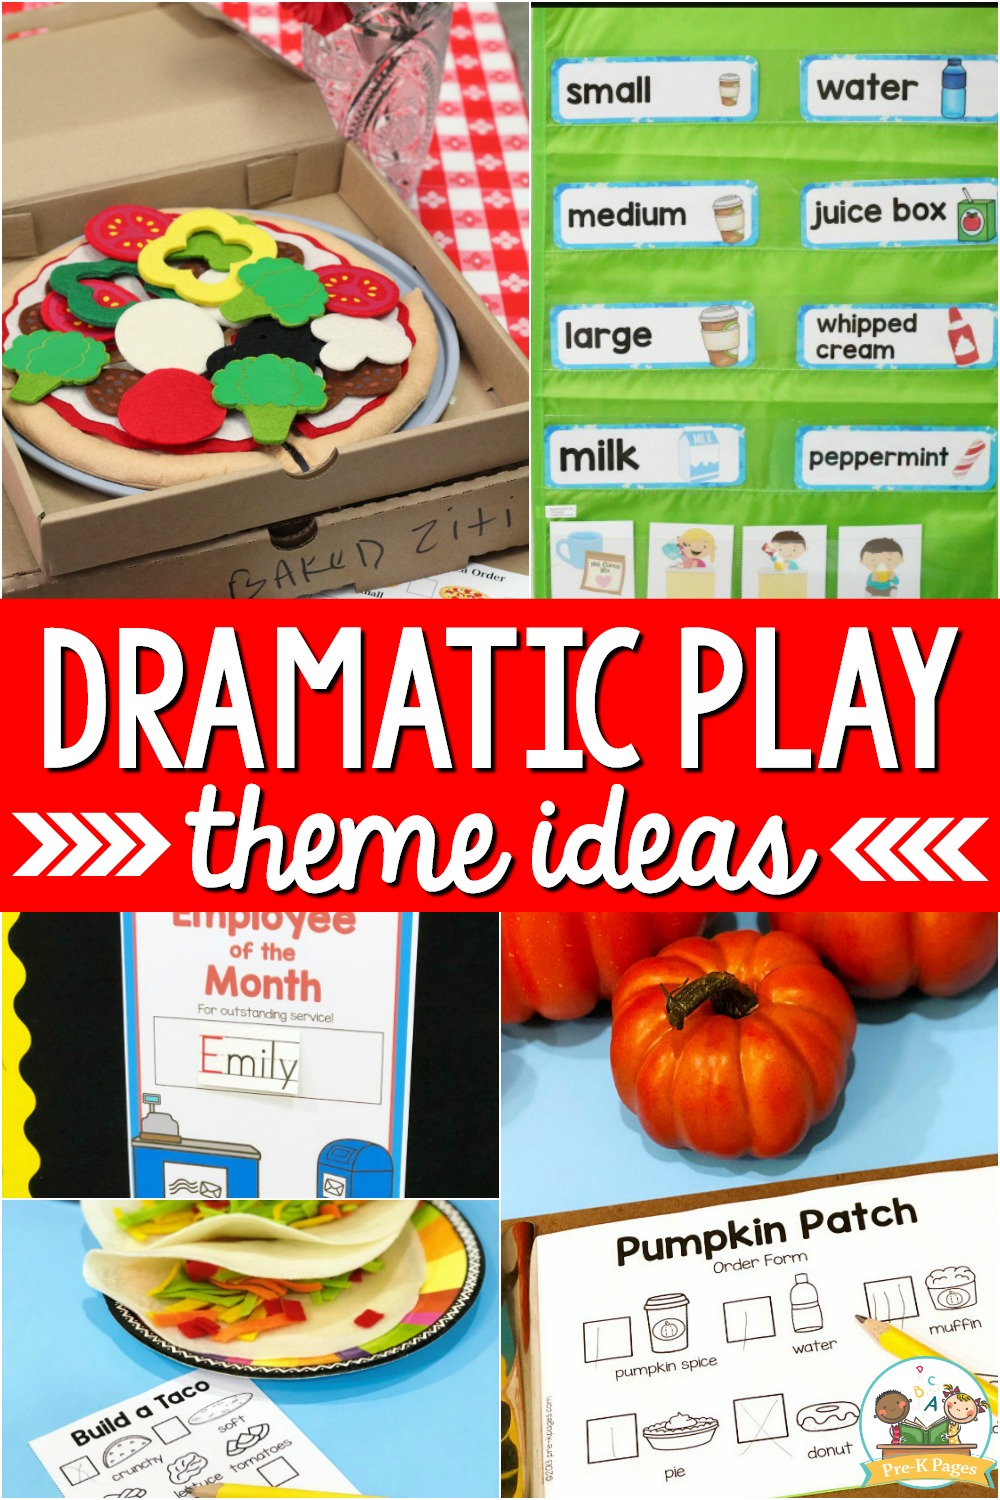 Dramatic Play Theme Ideas